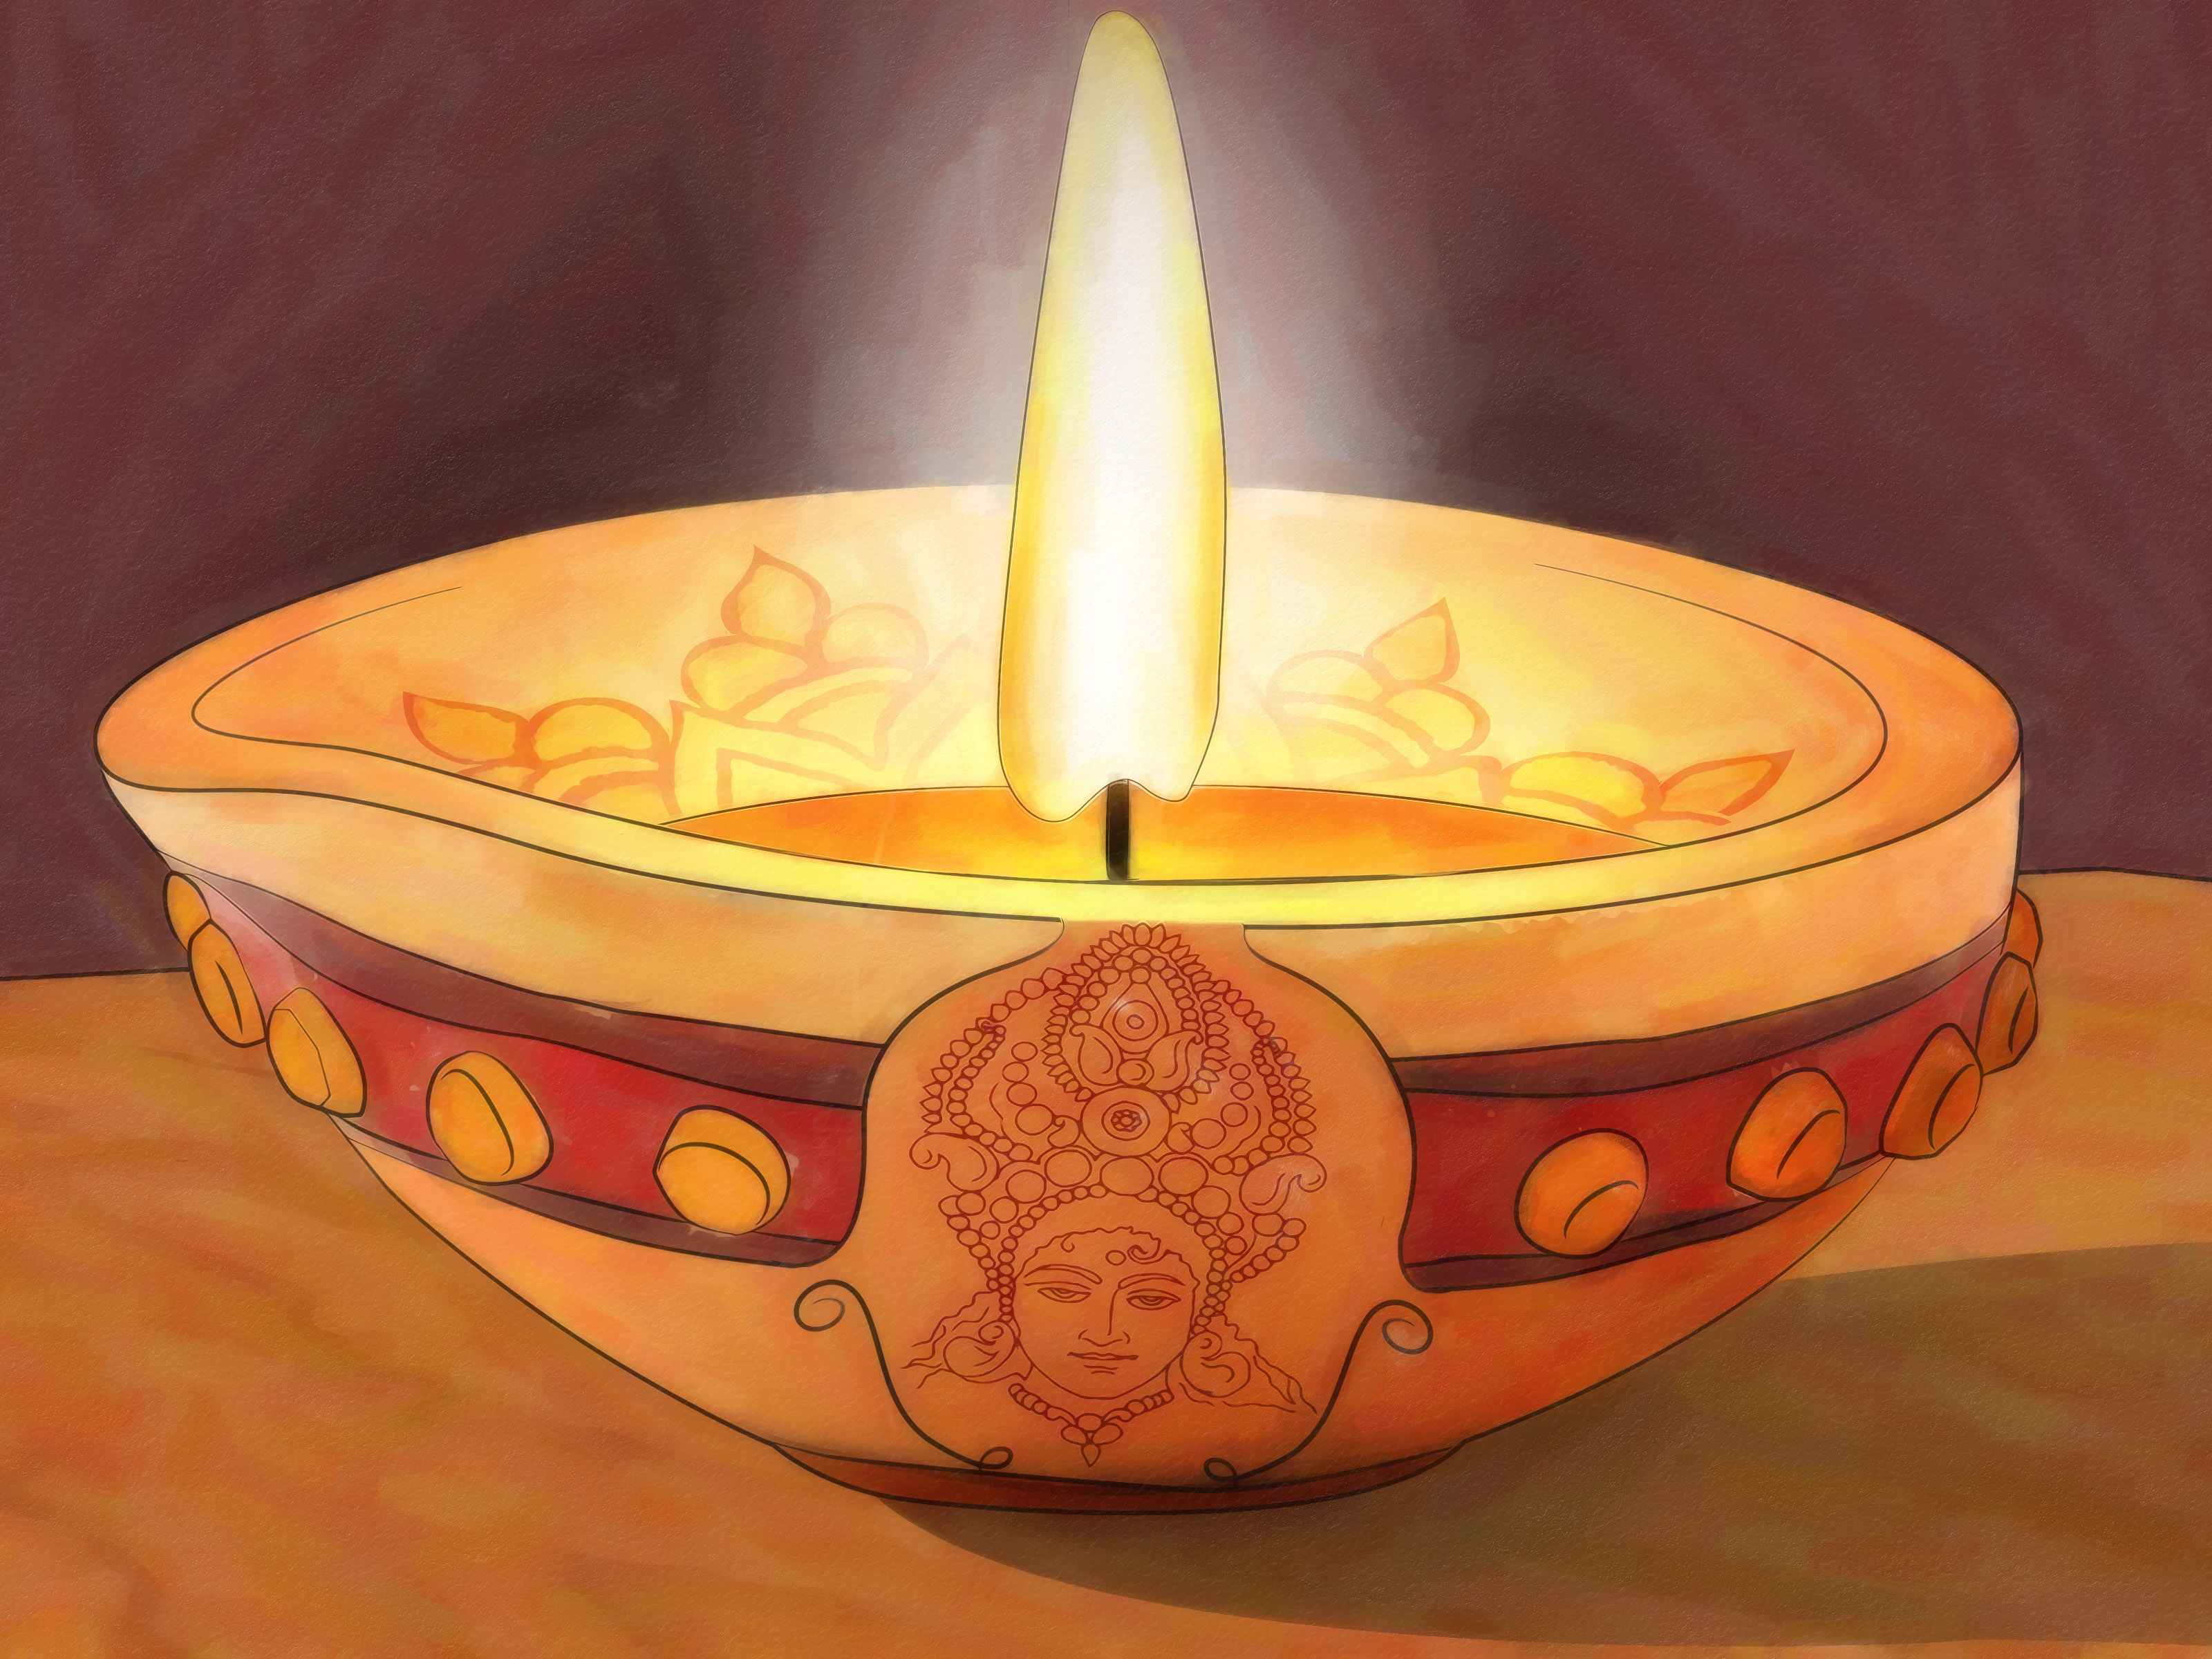 image titled decorate. 3200x2400 3 Ways To Decorate A Diya Image Titled